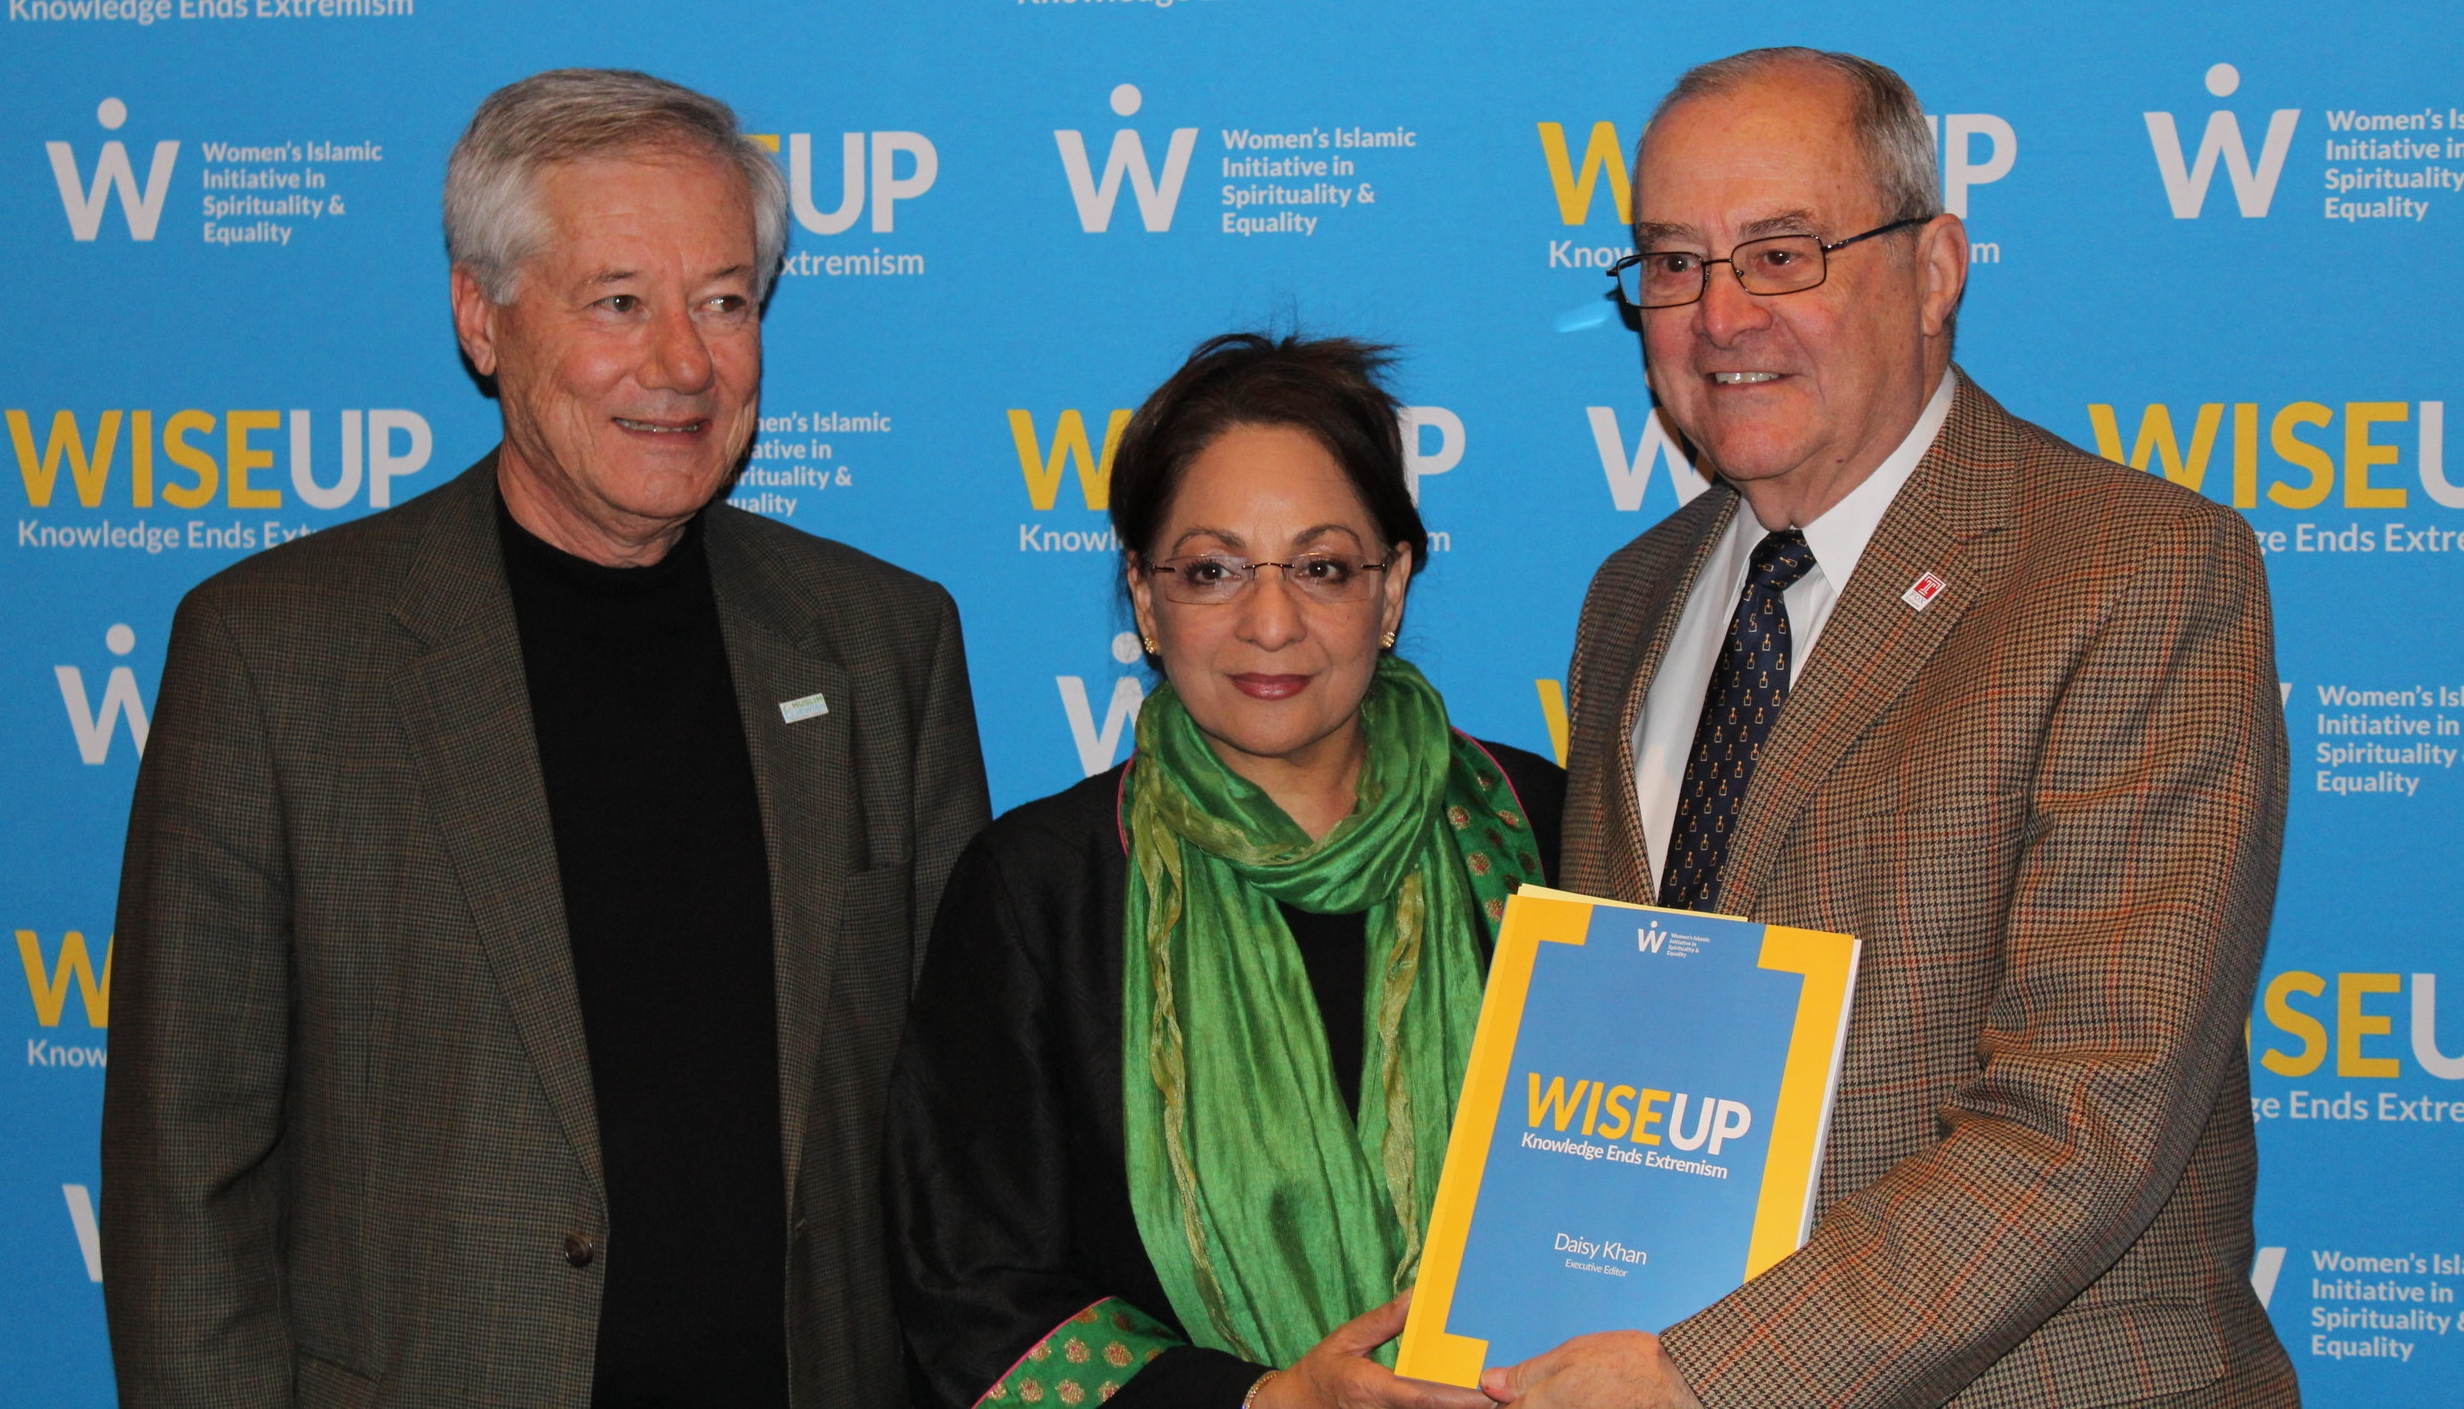 DI Board Chair Majid Alsayegh (pictured left), with WISE's Daisy Khan and DI Executive Director Howard Cohen, at the WISE Up Townhall Dialogue event.